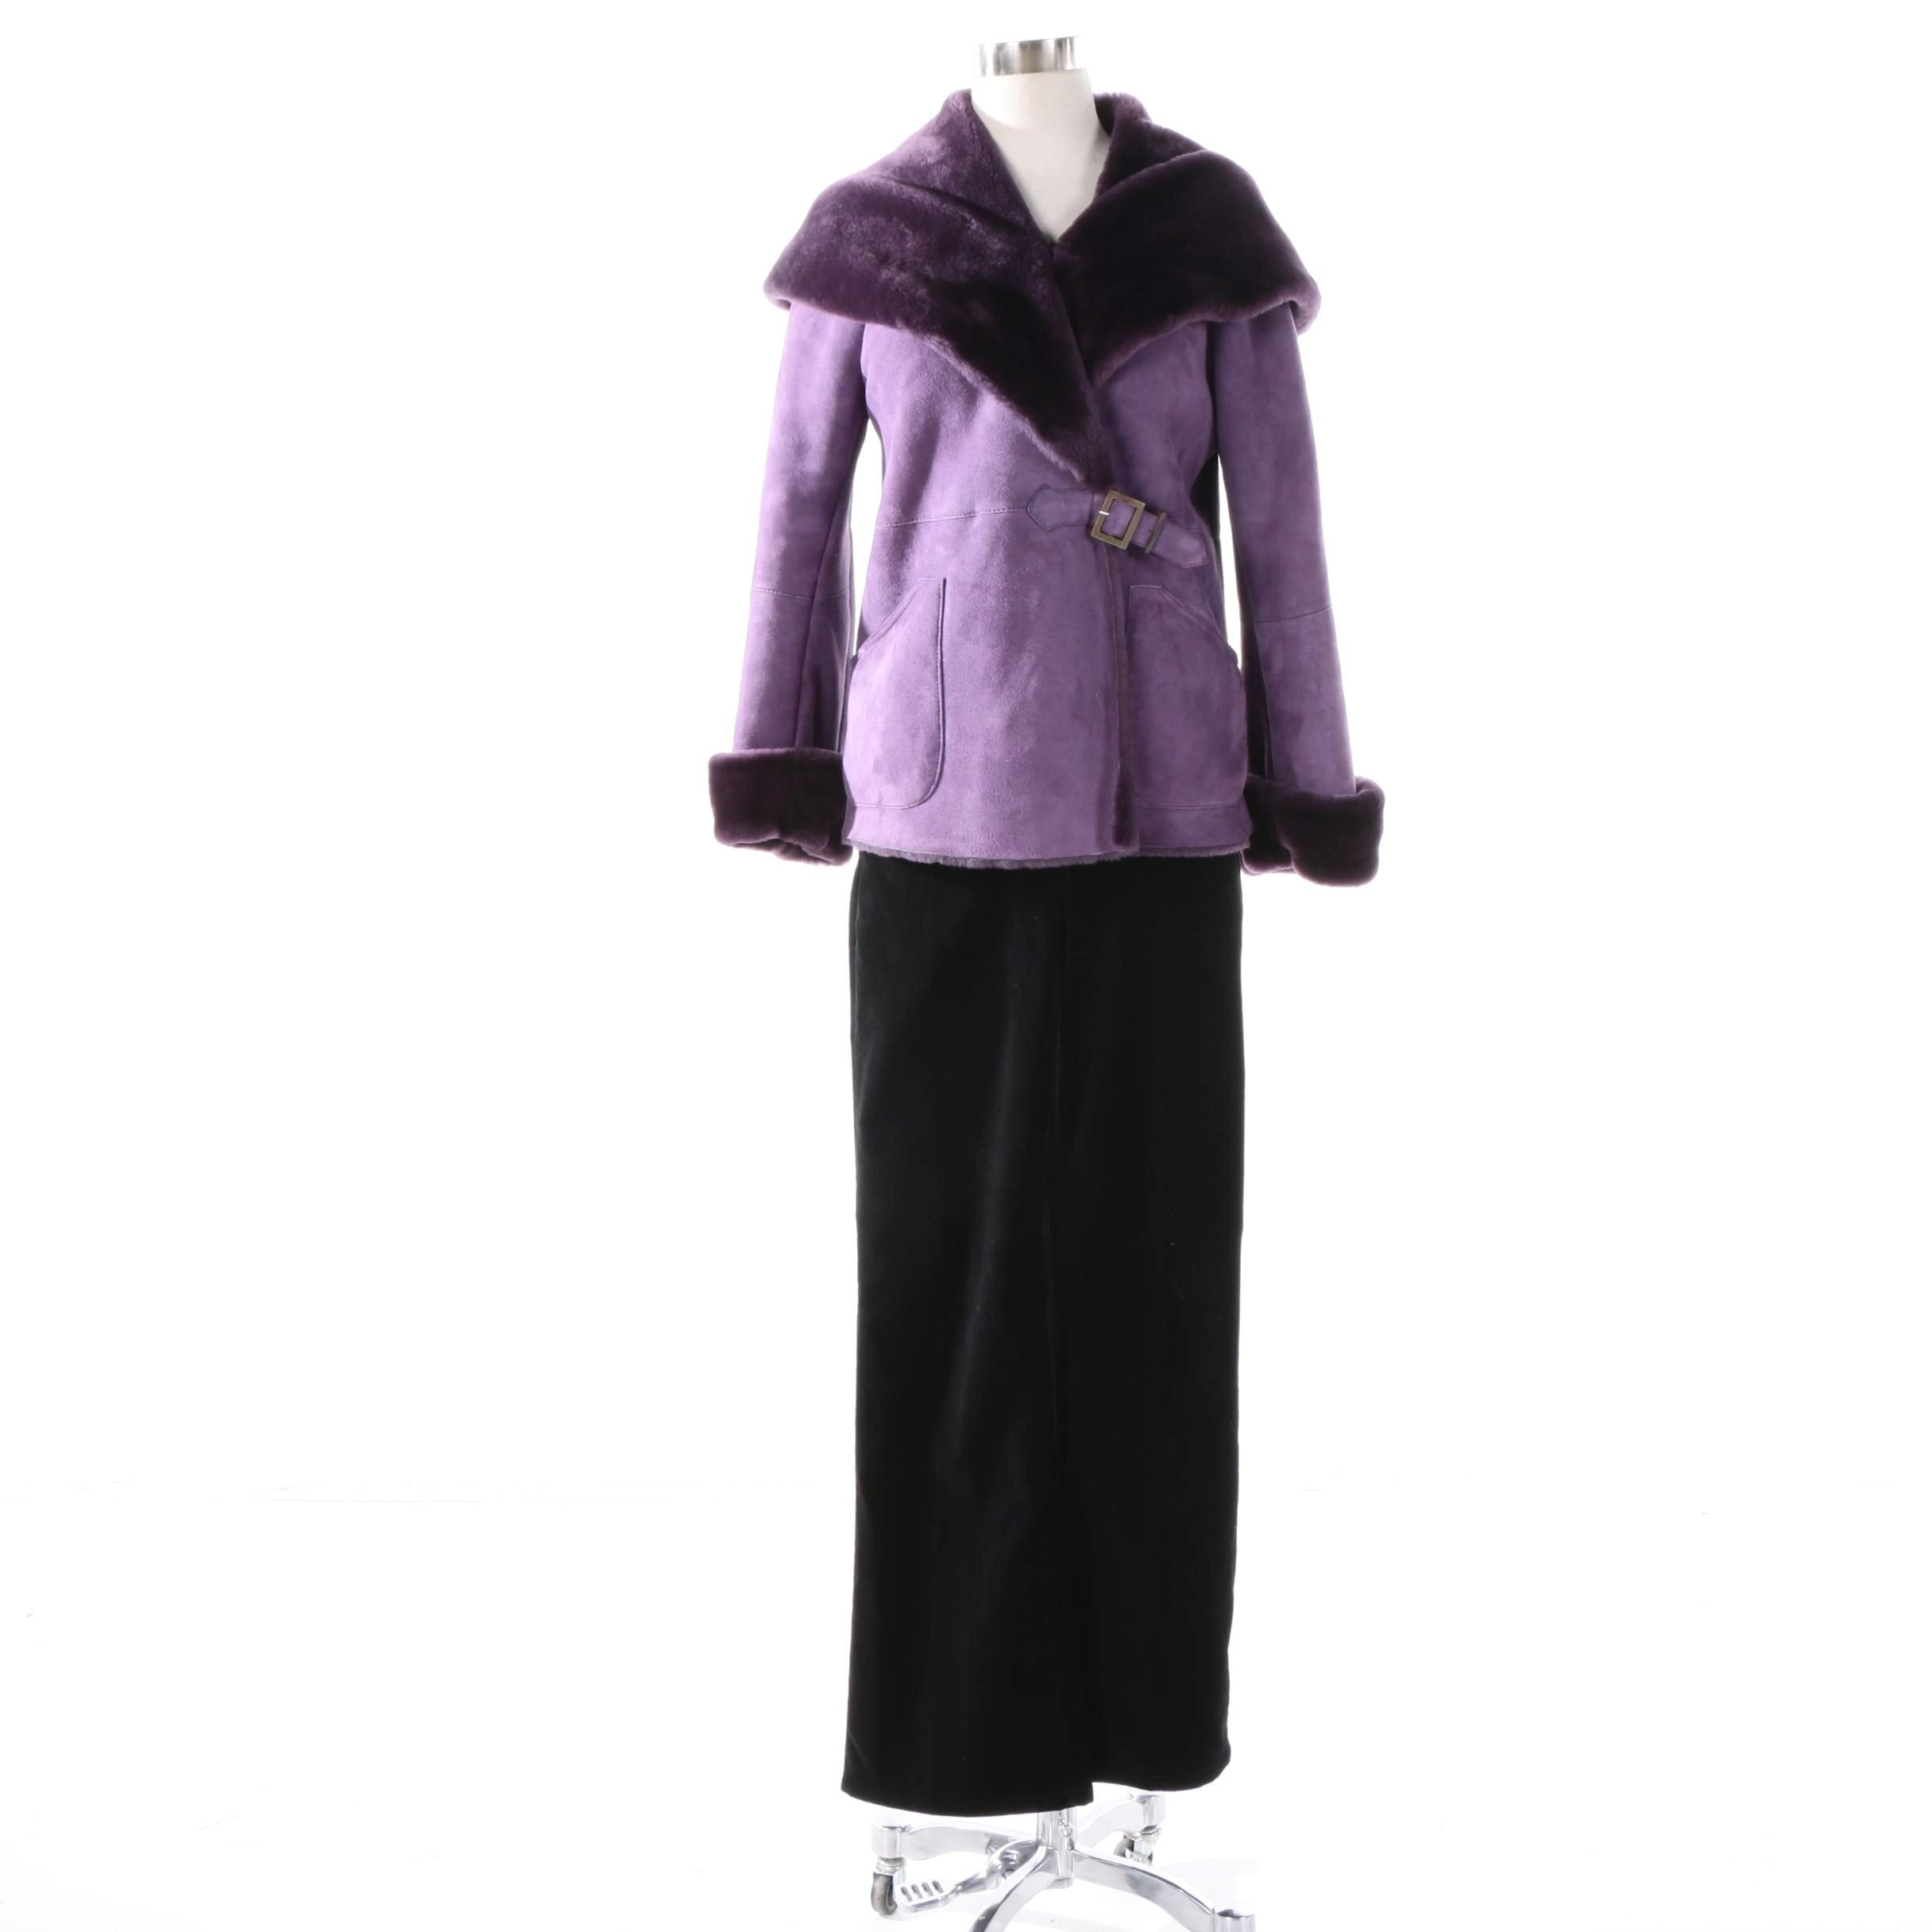 Brioni Purple Suede Shearling Coat and MICHAEL Michael Kors Velvet Pants